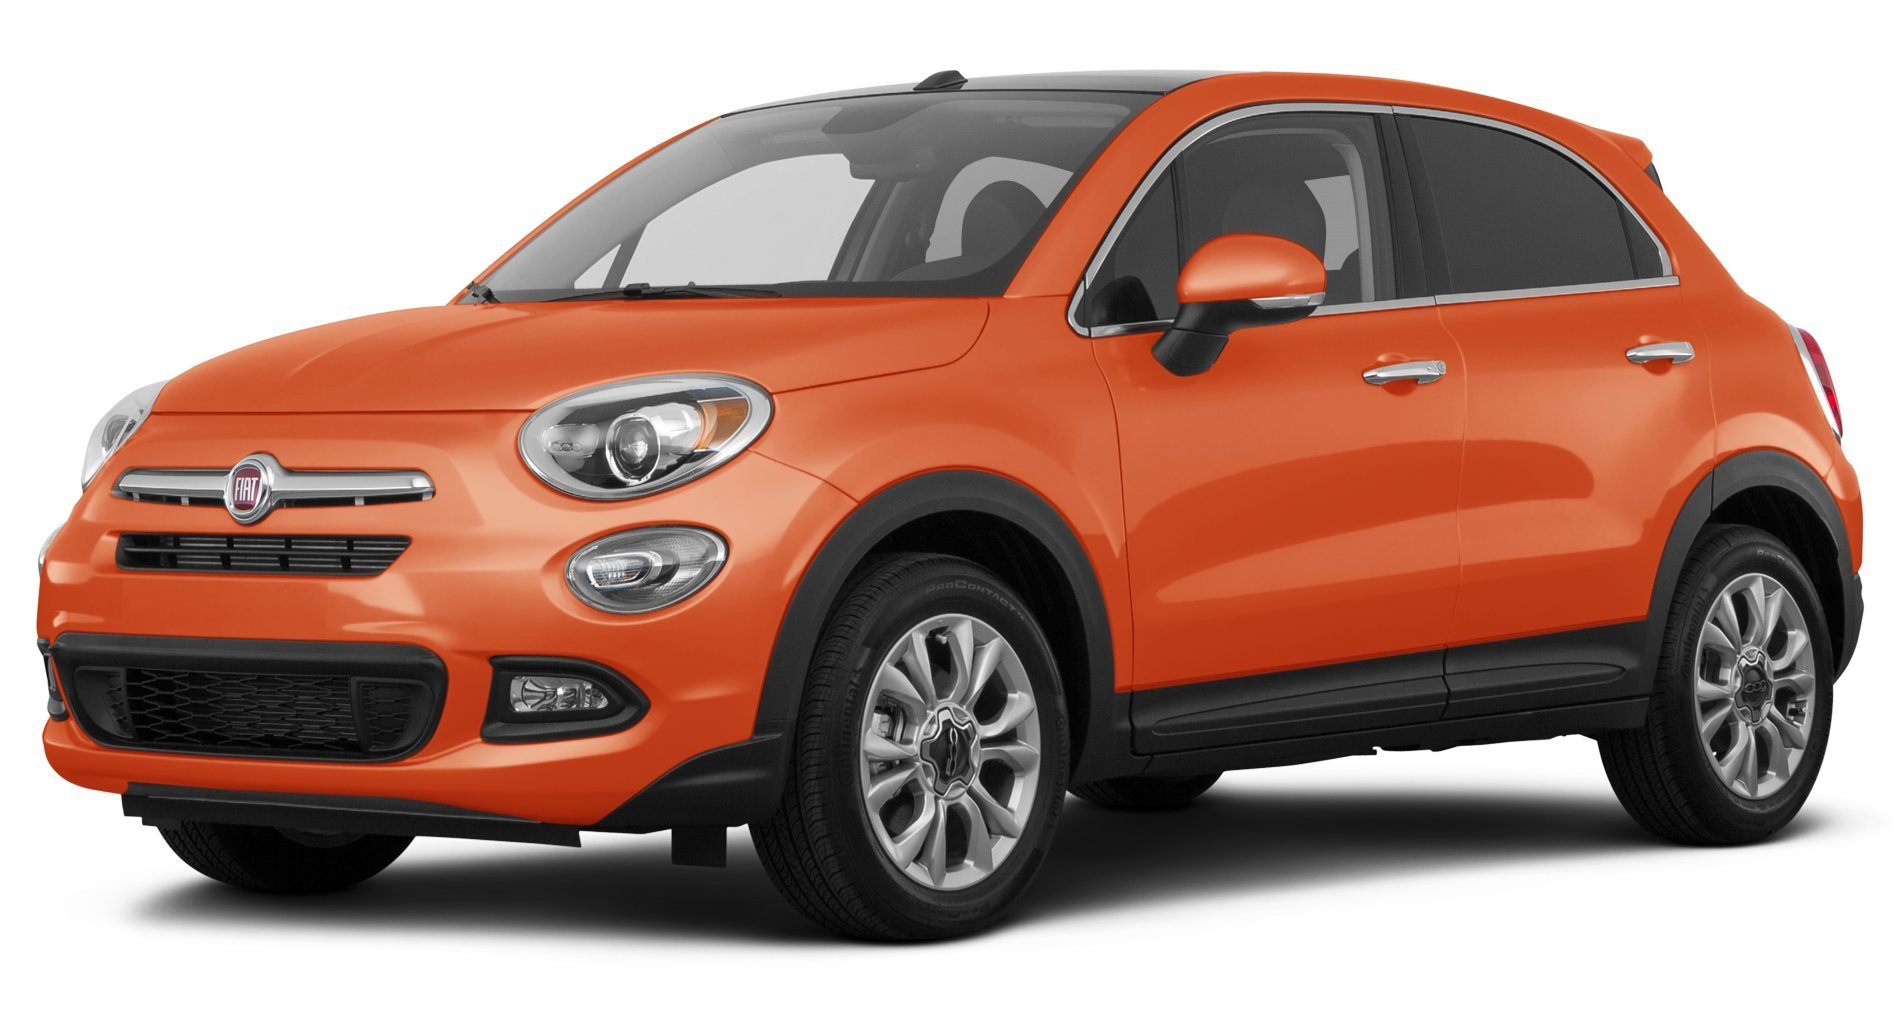 Amazoncom 2016 Fiat 500X Reviews Images and Specs Vehicles